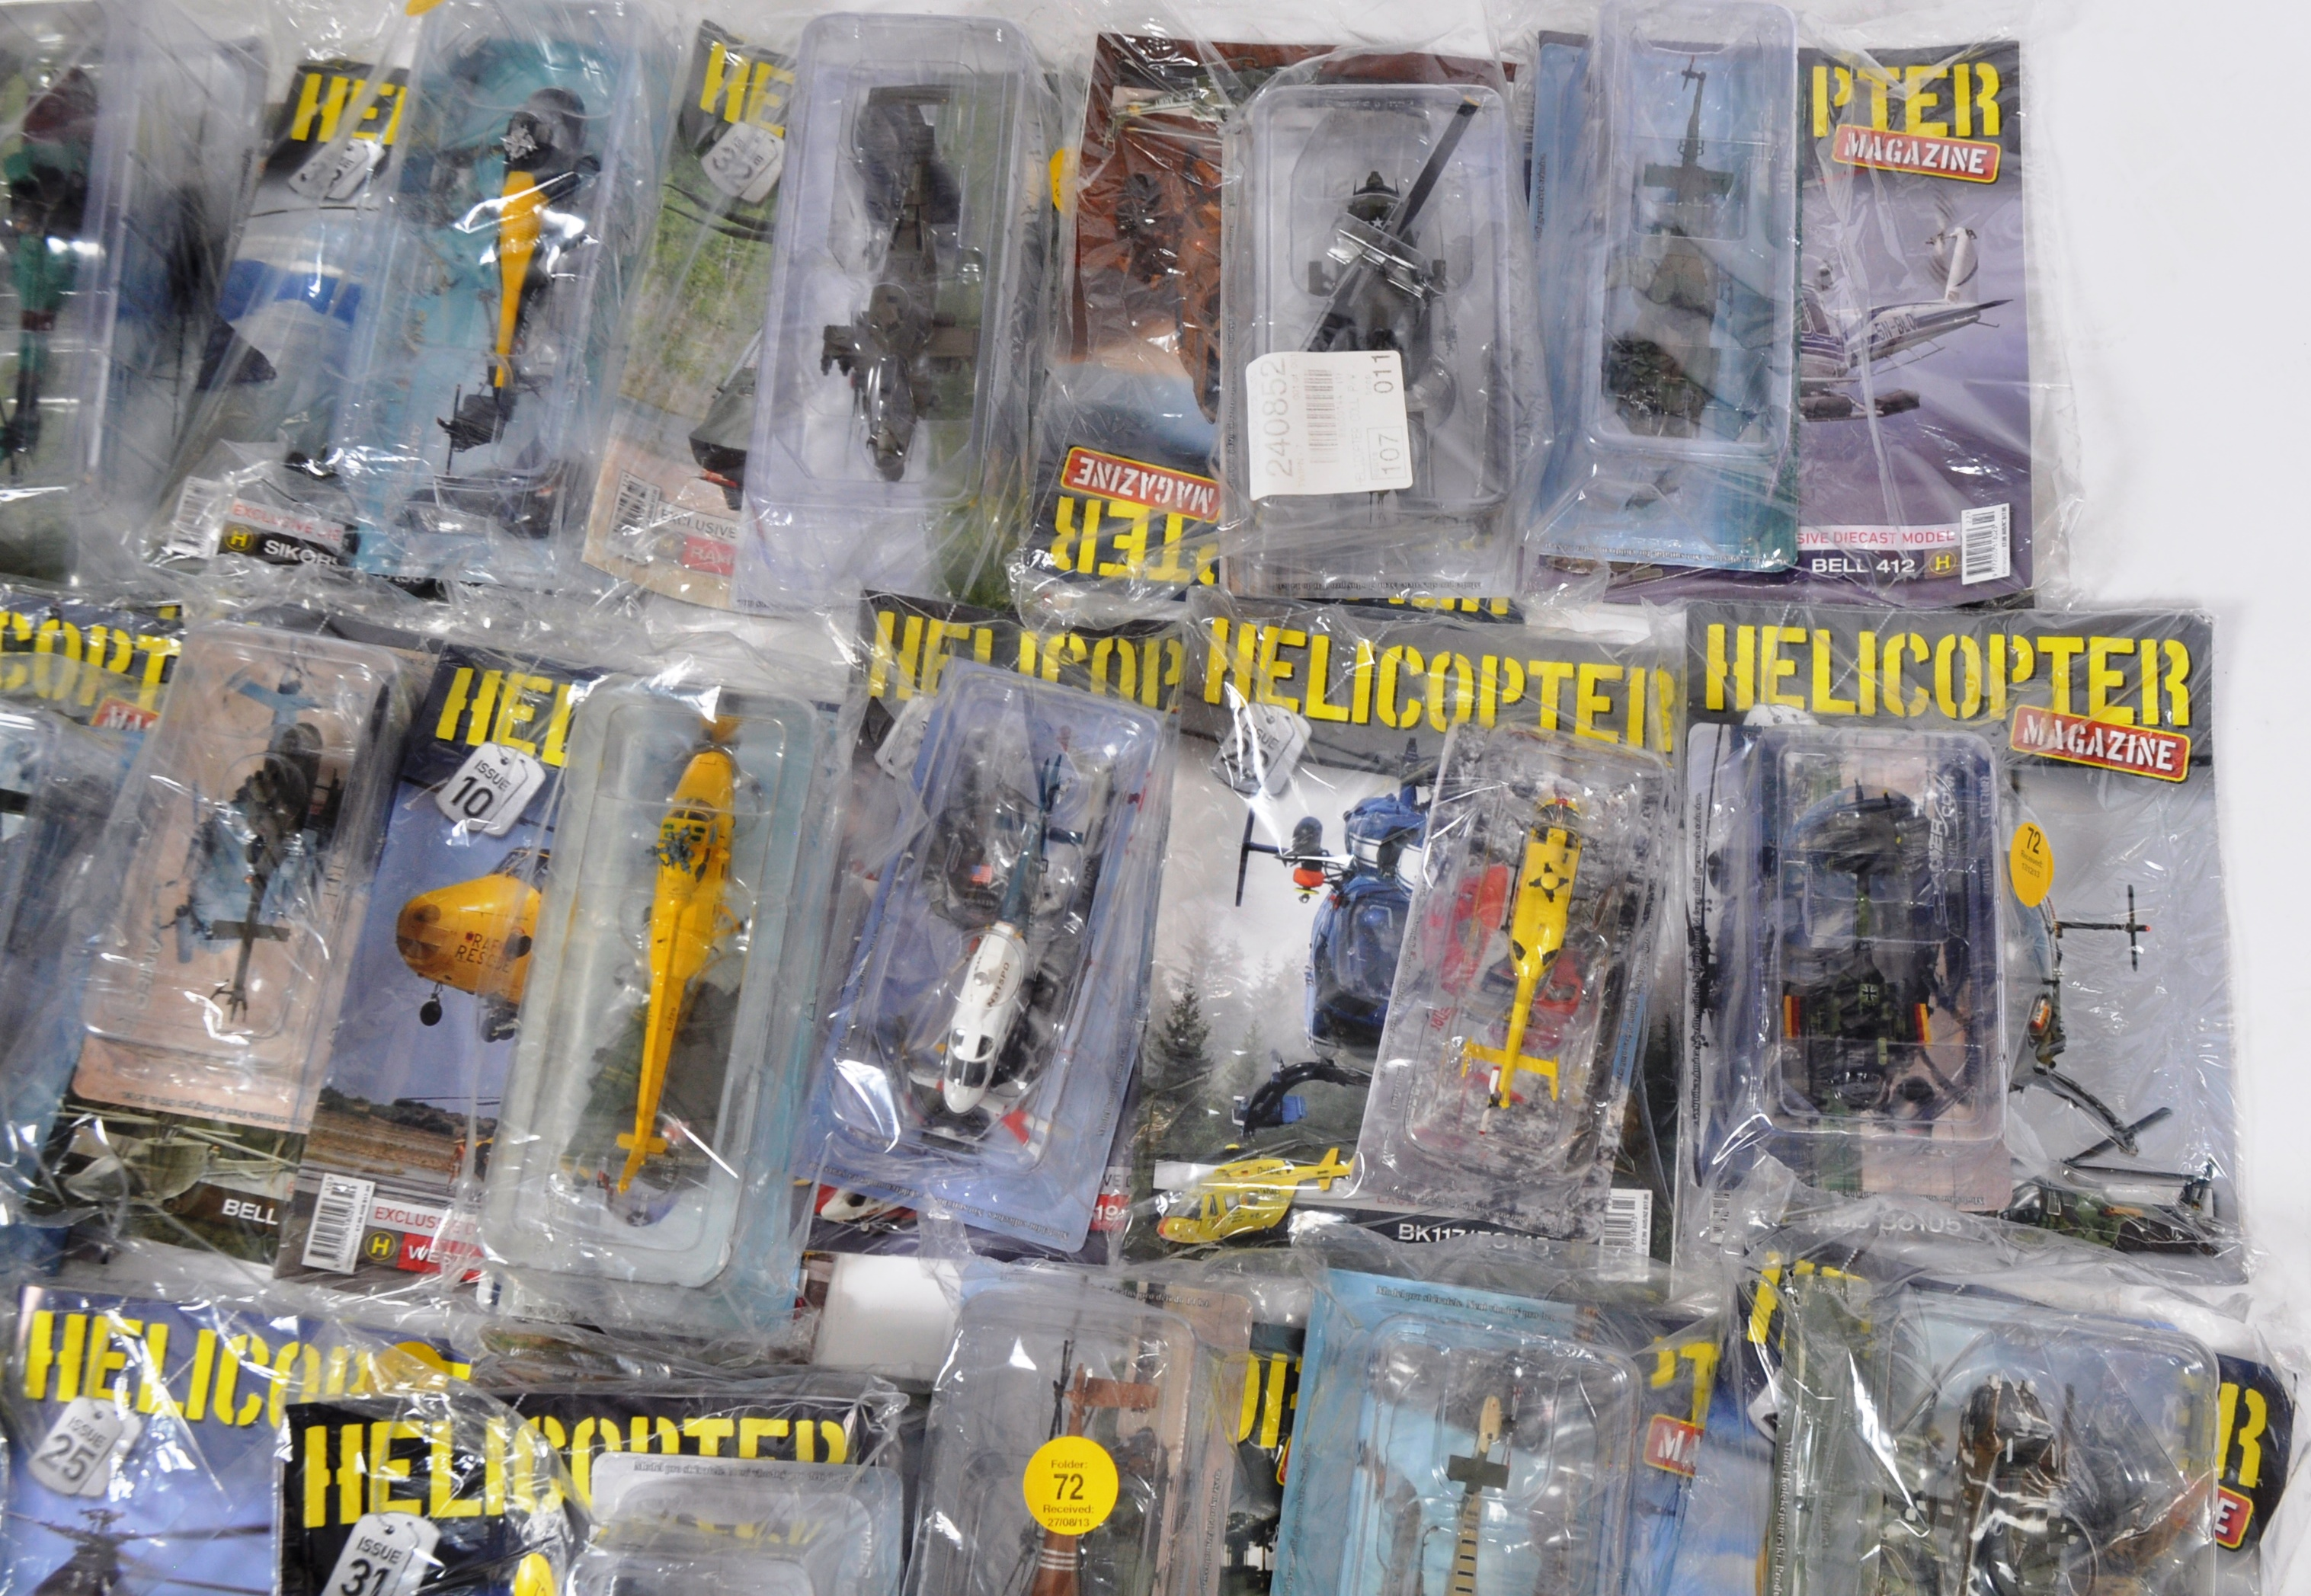 COLLECTION OF ASSORTED HELICOPTER DIECAST AND MAGAZINES - Image 5 of 8